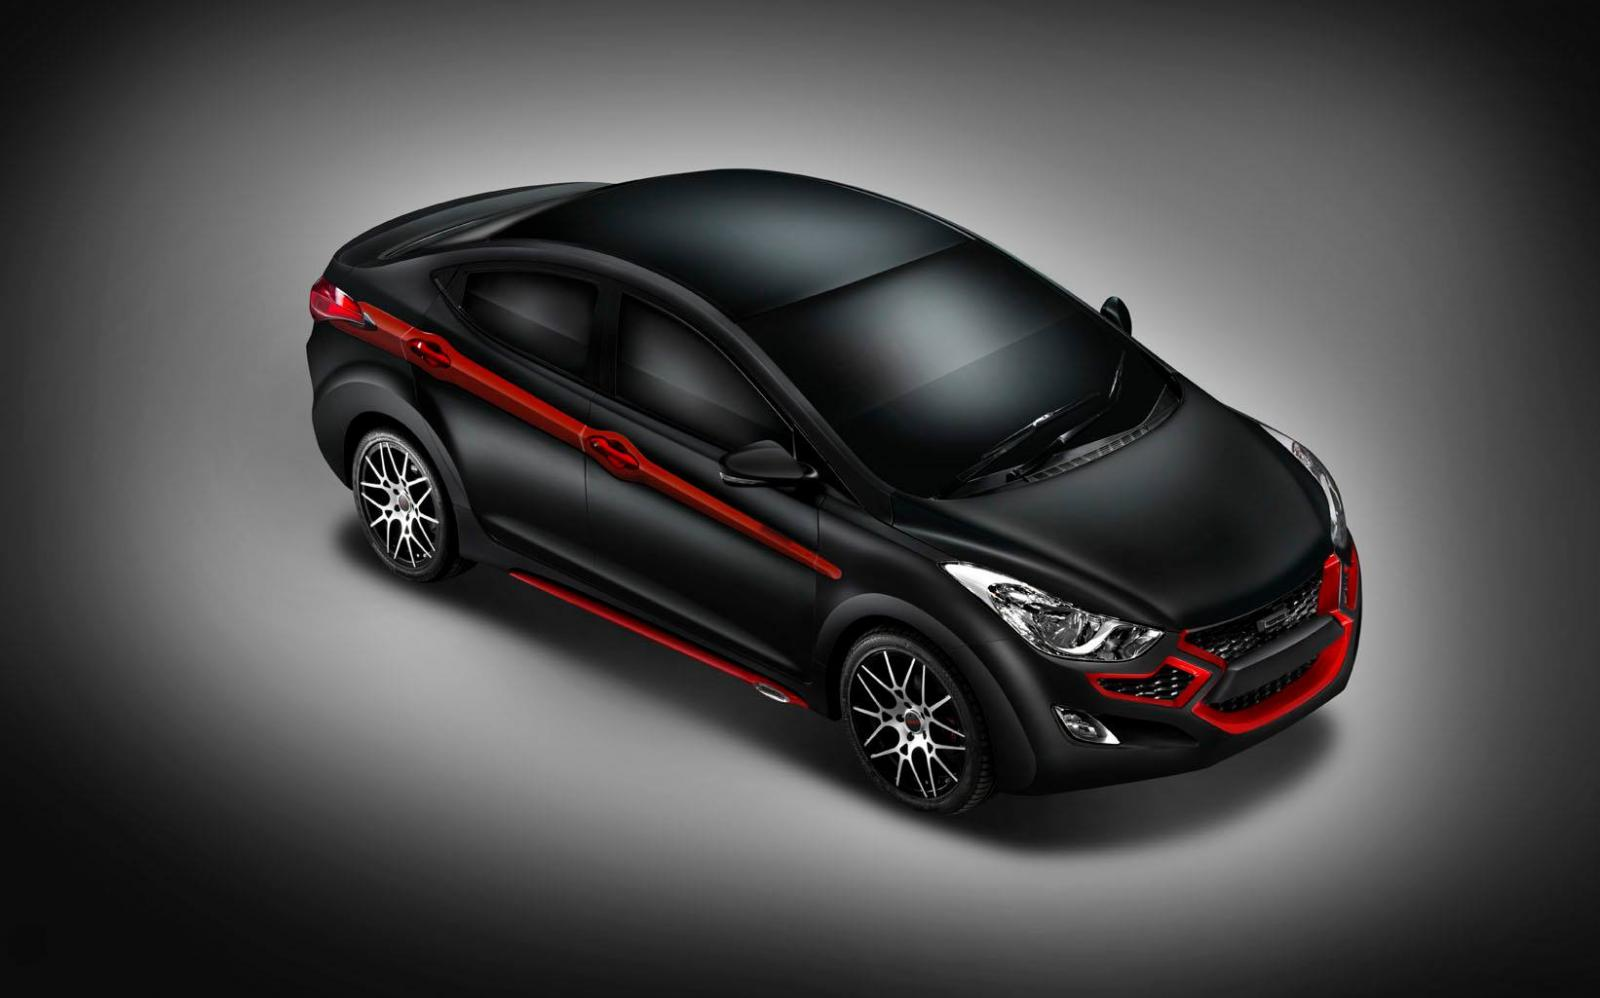 Accent Designs Hyundai Elantra Gets New Looks From Dc Design Autoevolution